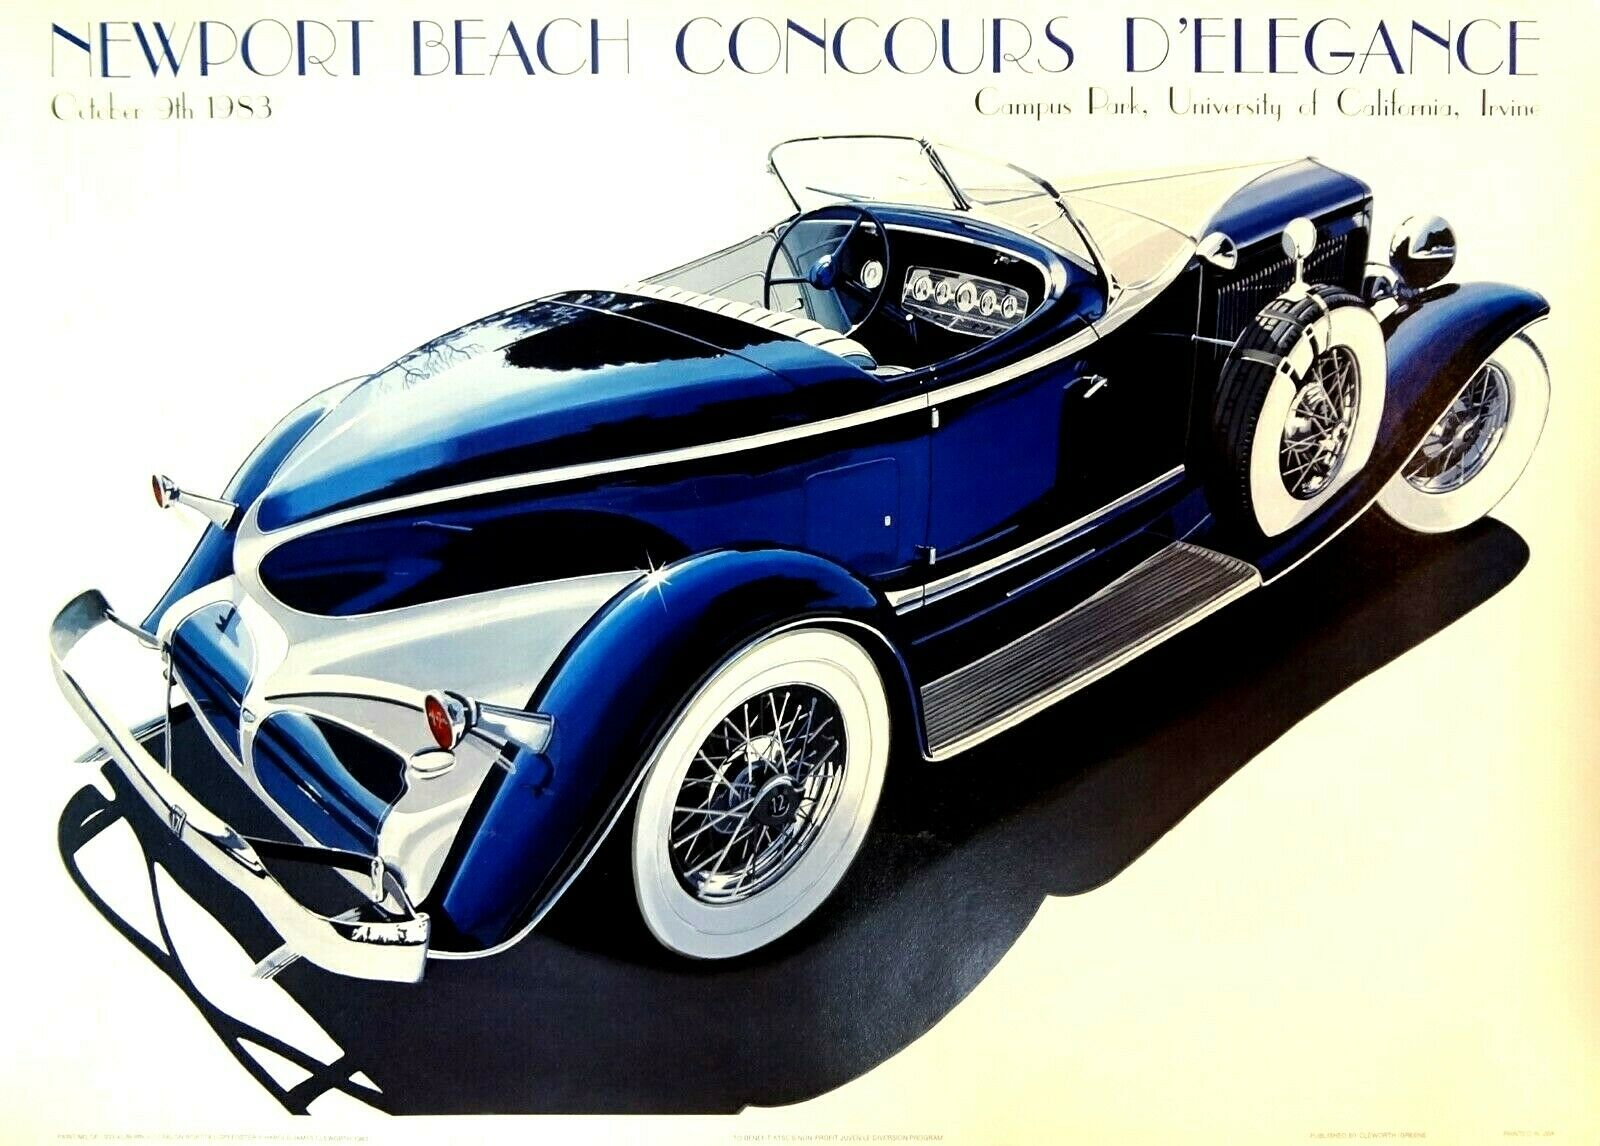 Harold clayworth 1933 Auburn V12 Speedster 1983 Newport Beach Concours Cartel